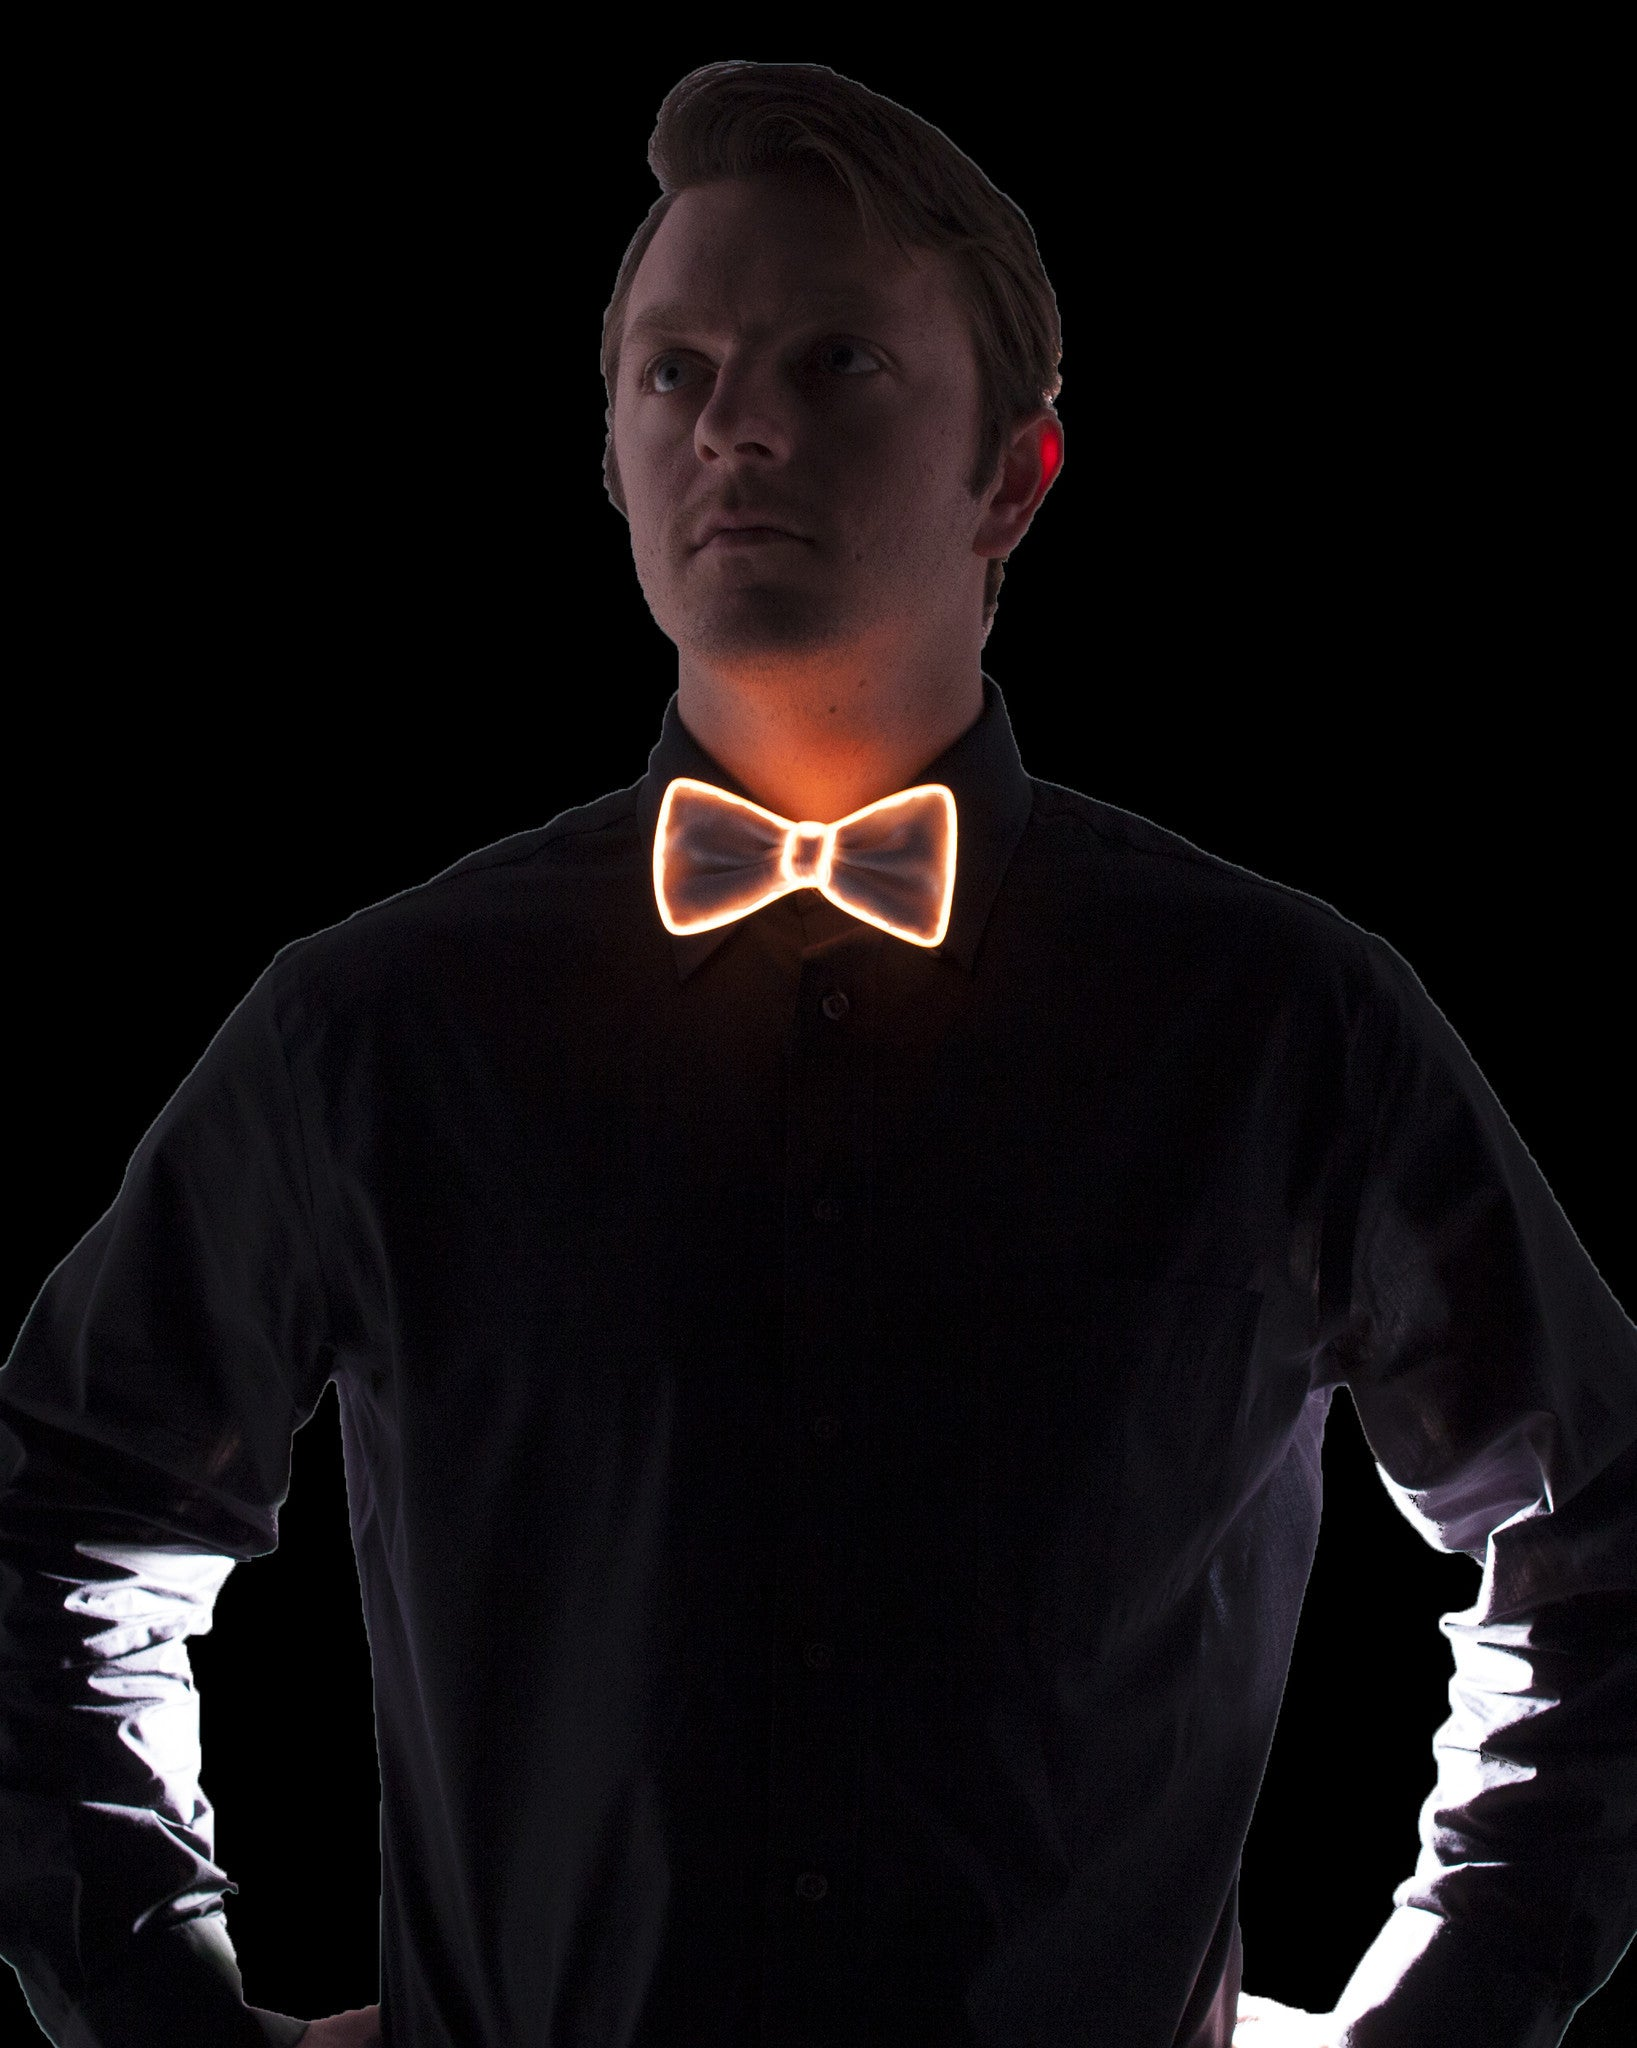 White Light Up Bow Tie - Electric Styles | World's Number 1 Light Up Shoe Store - {product_type}} - Red - 7